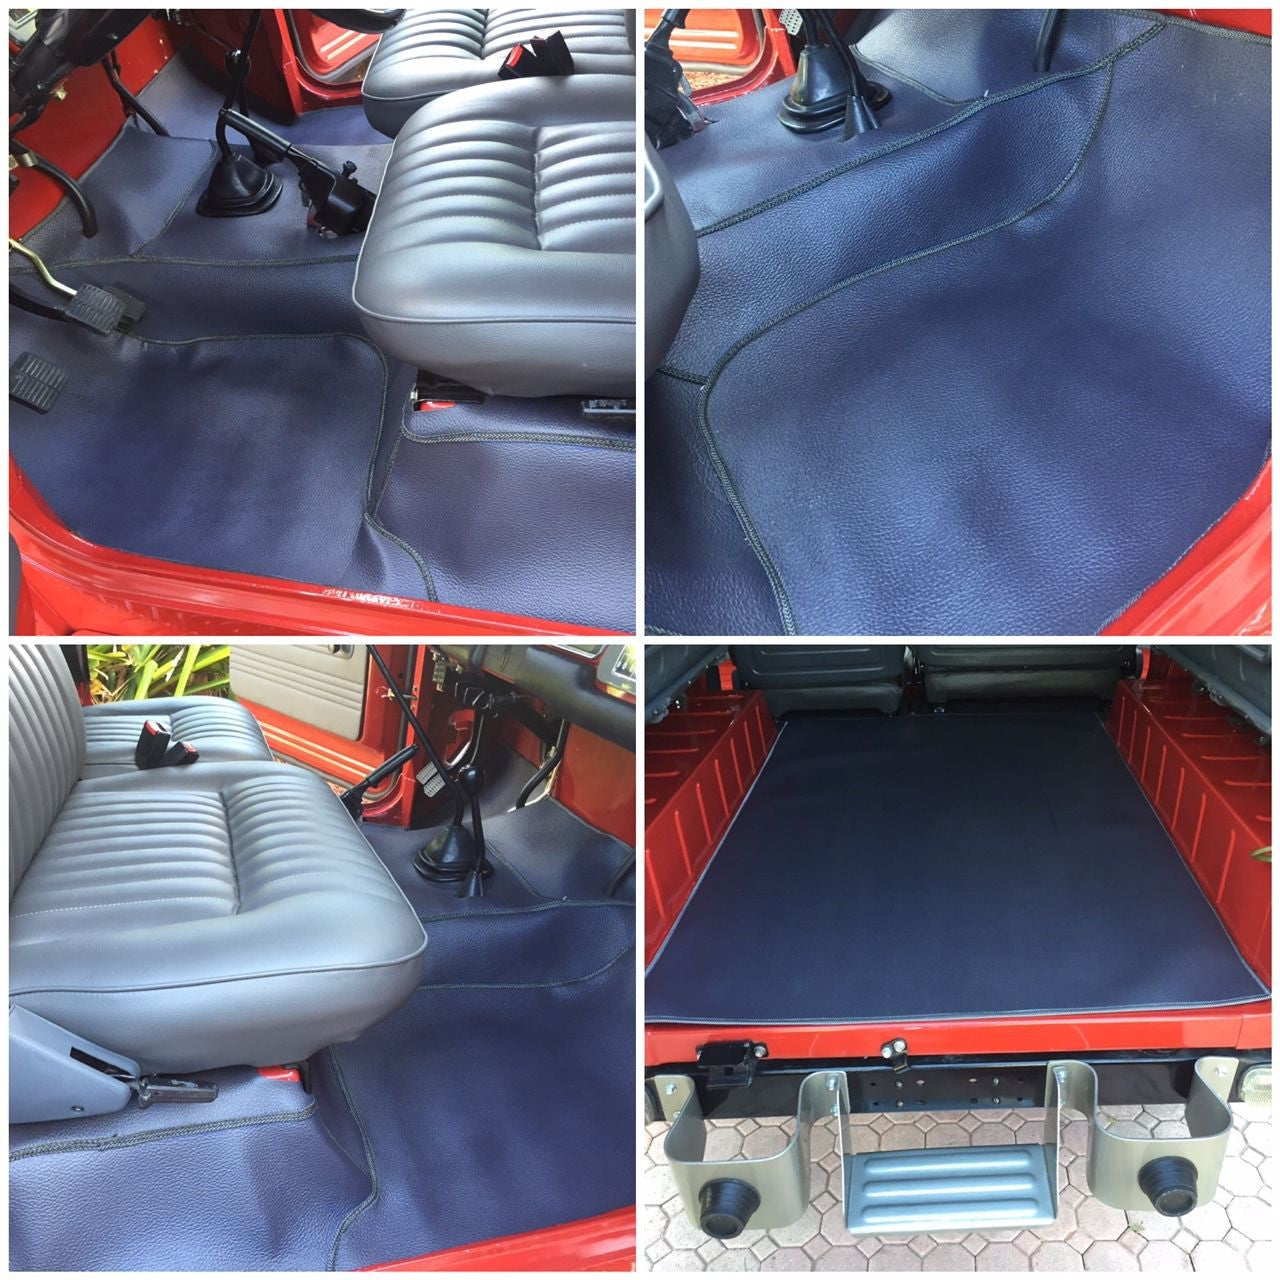 FJ40 Replacement Floor Mats